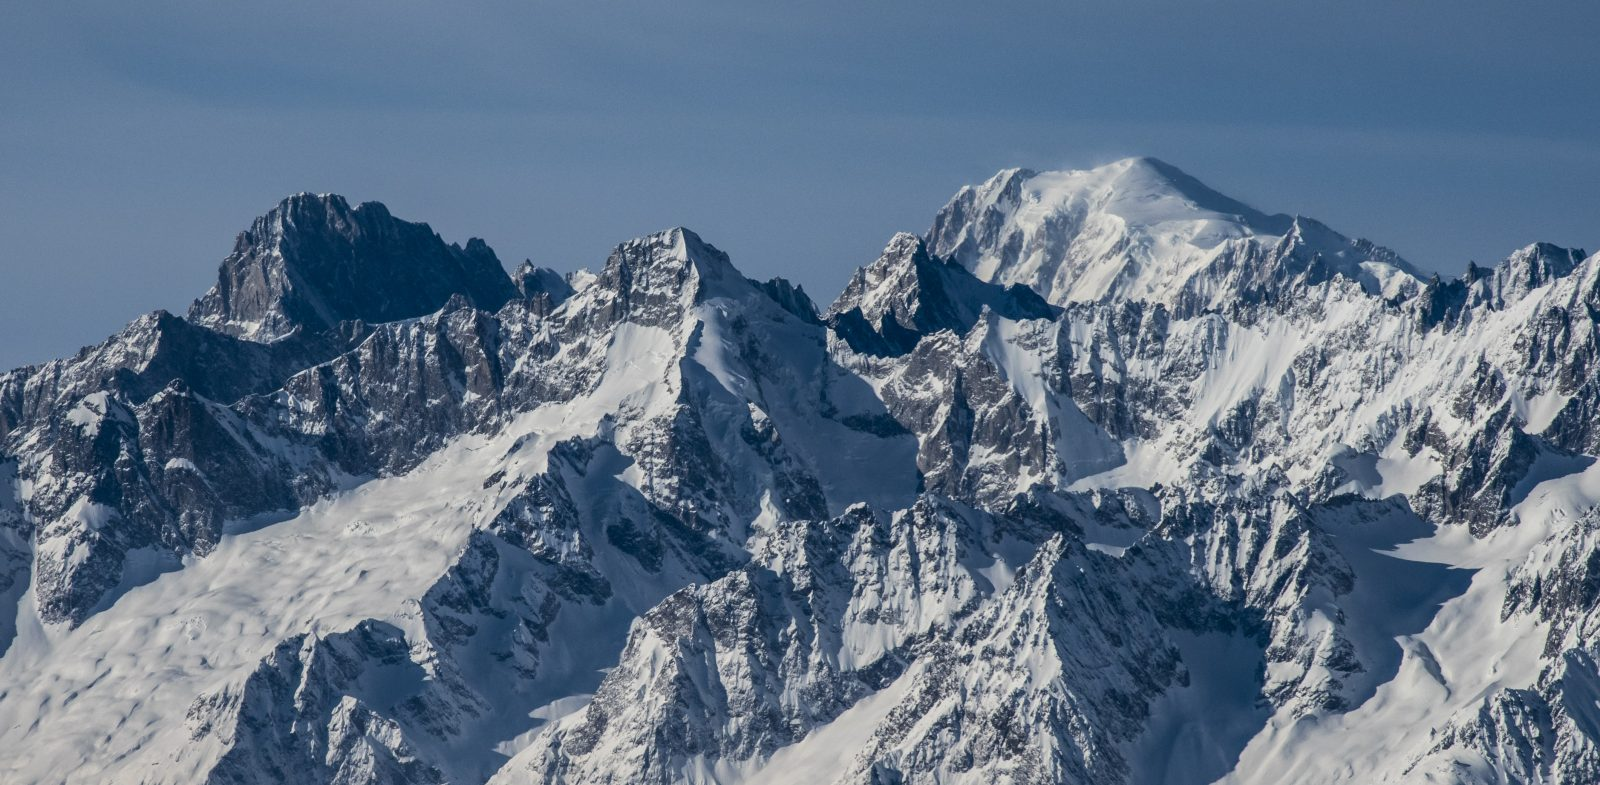 Everest - presented in a chain of mountains